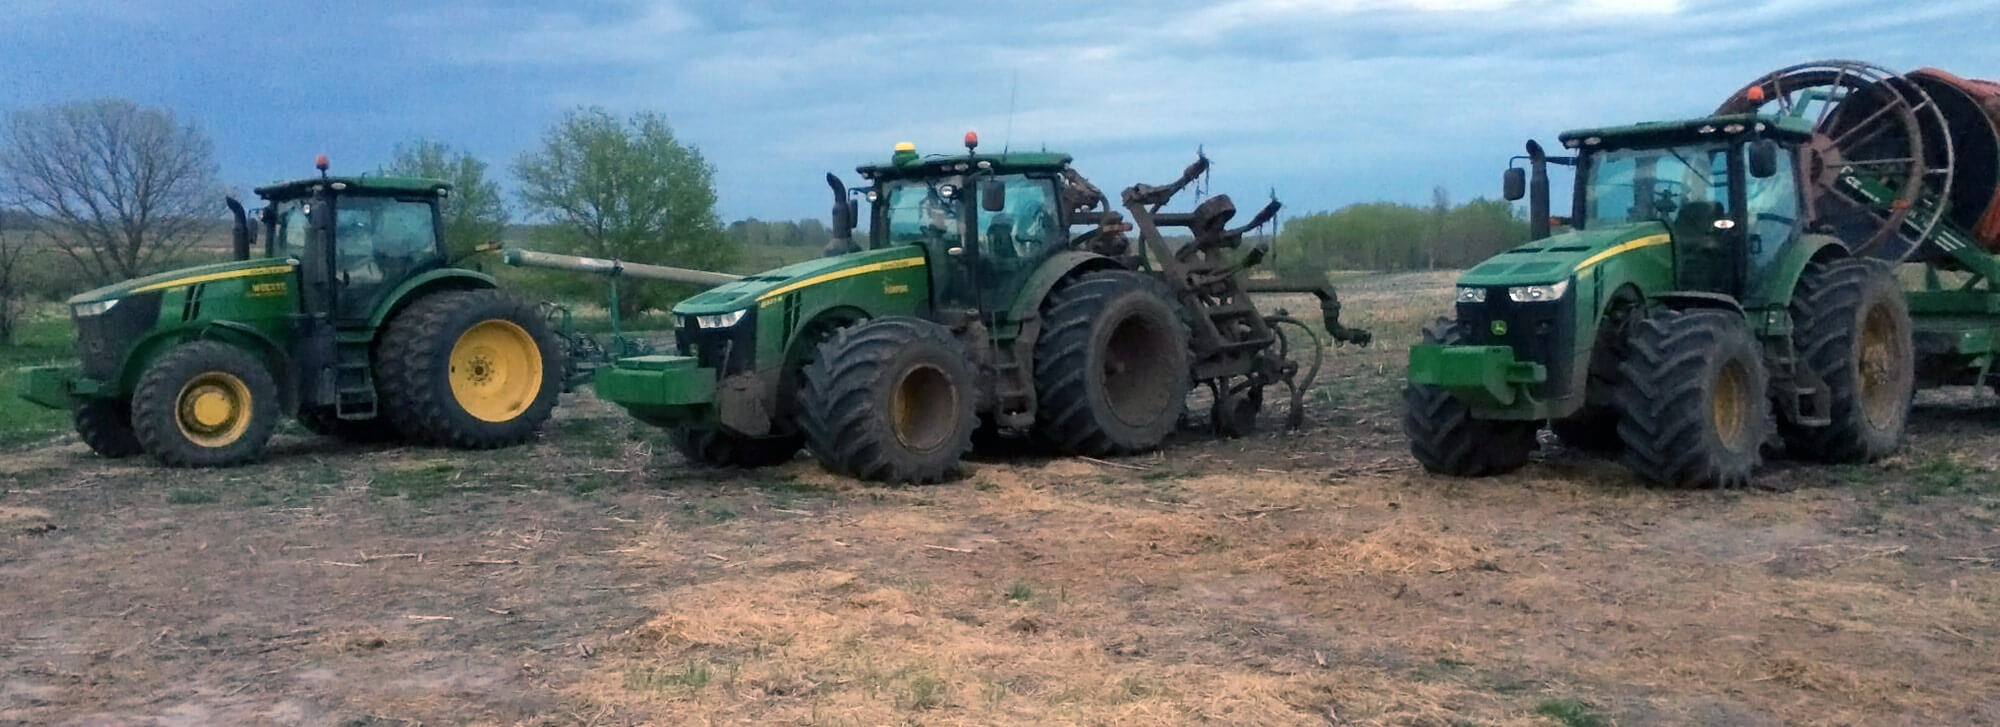 Group of John Deere tractors prepared for manure pumping via drag hose application